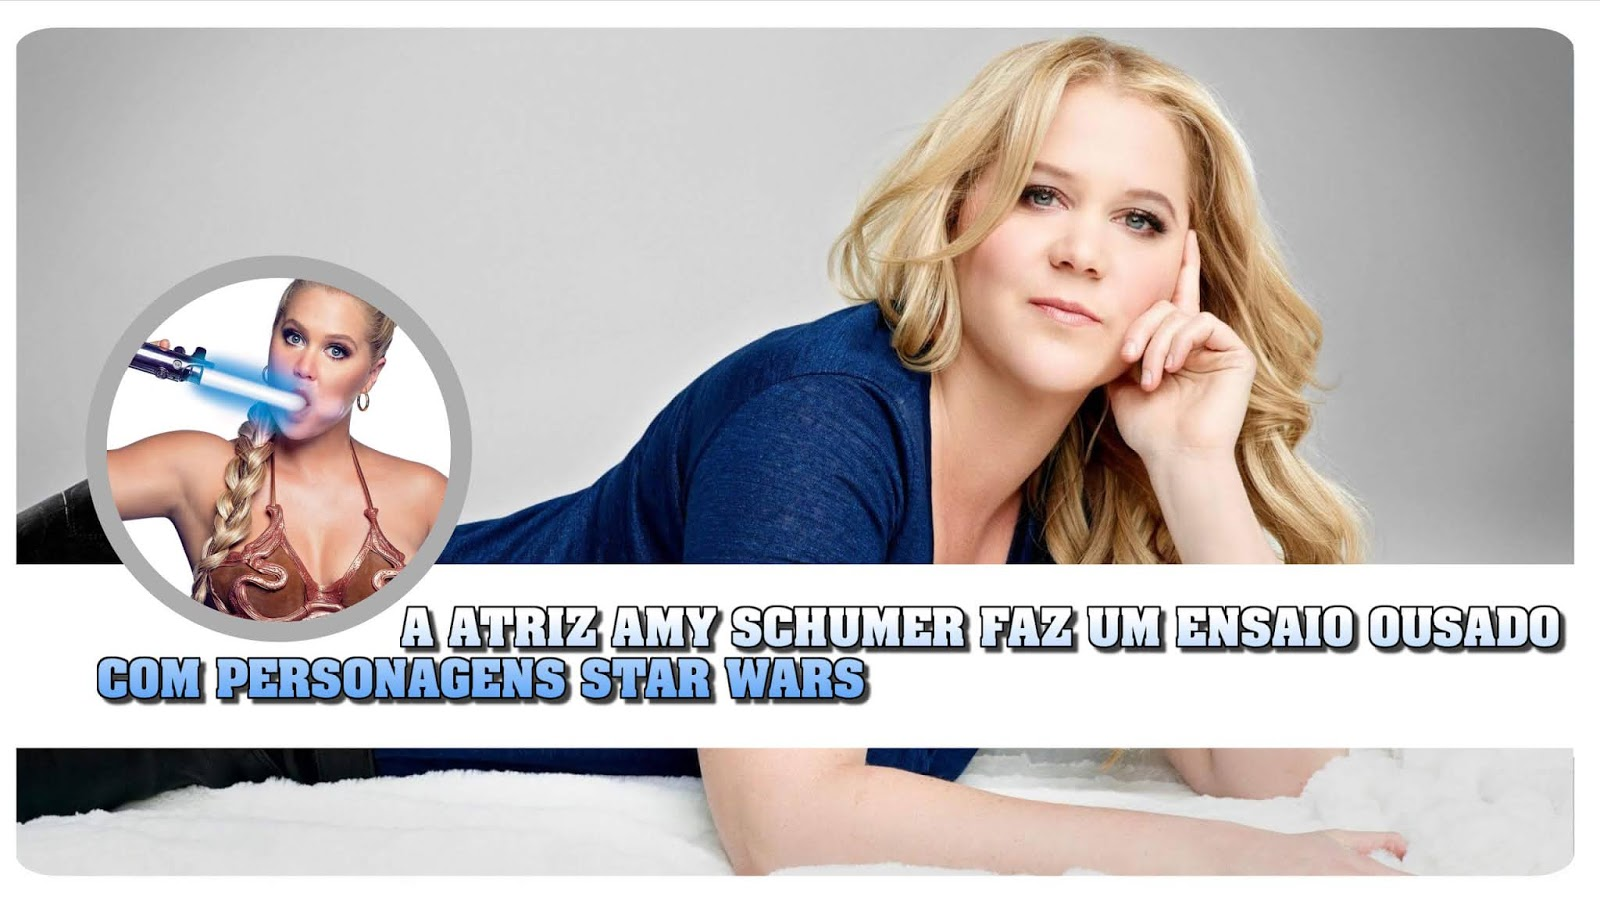 amy-schumer-ensaio-star-wars